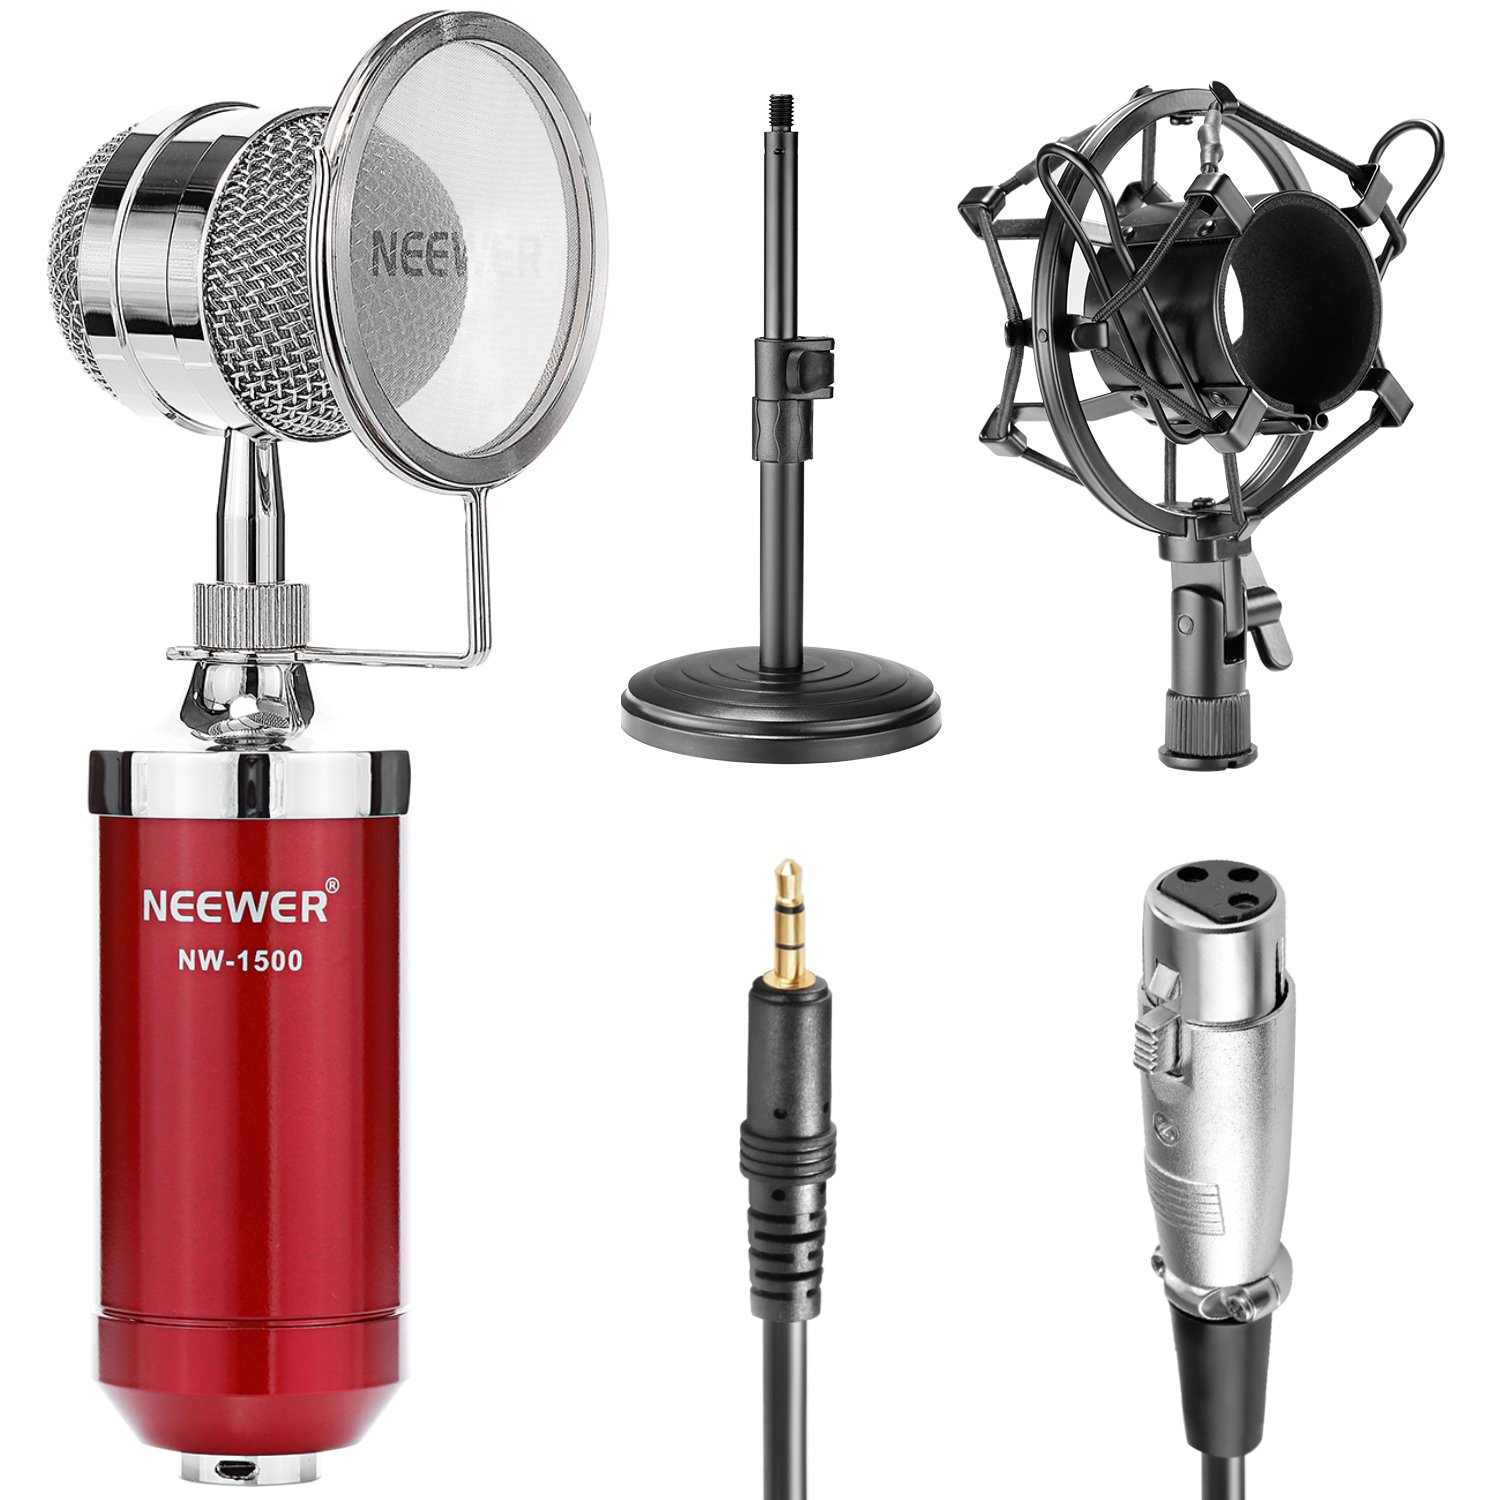 Neewer® White NW-1500 Desktop Broadcast & Recording Condenser Microphone with 3.5mm Male to XLR Female Cable, Adjustable Iron Desktop Mic Stand, Metal Shock Mount and Build-in Pop Filter